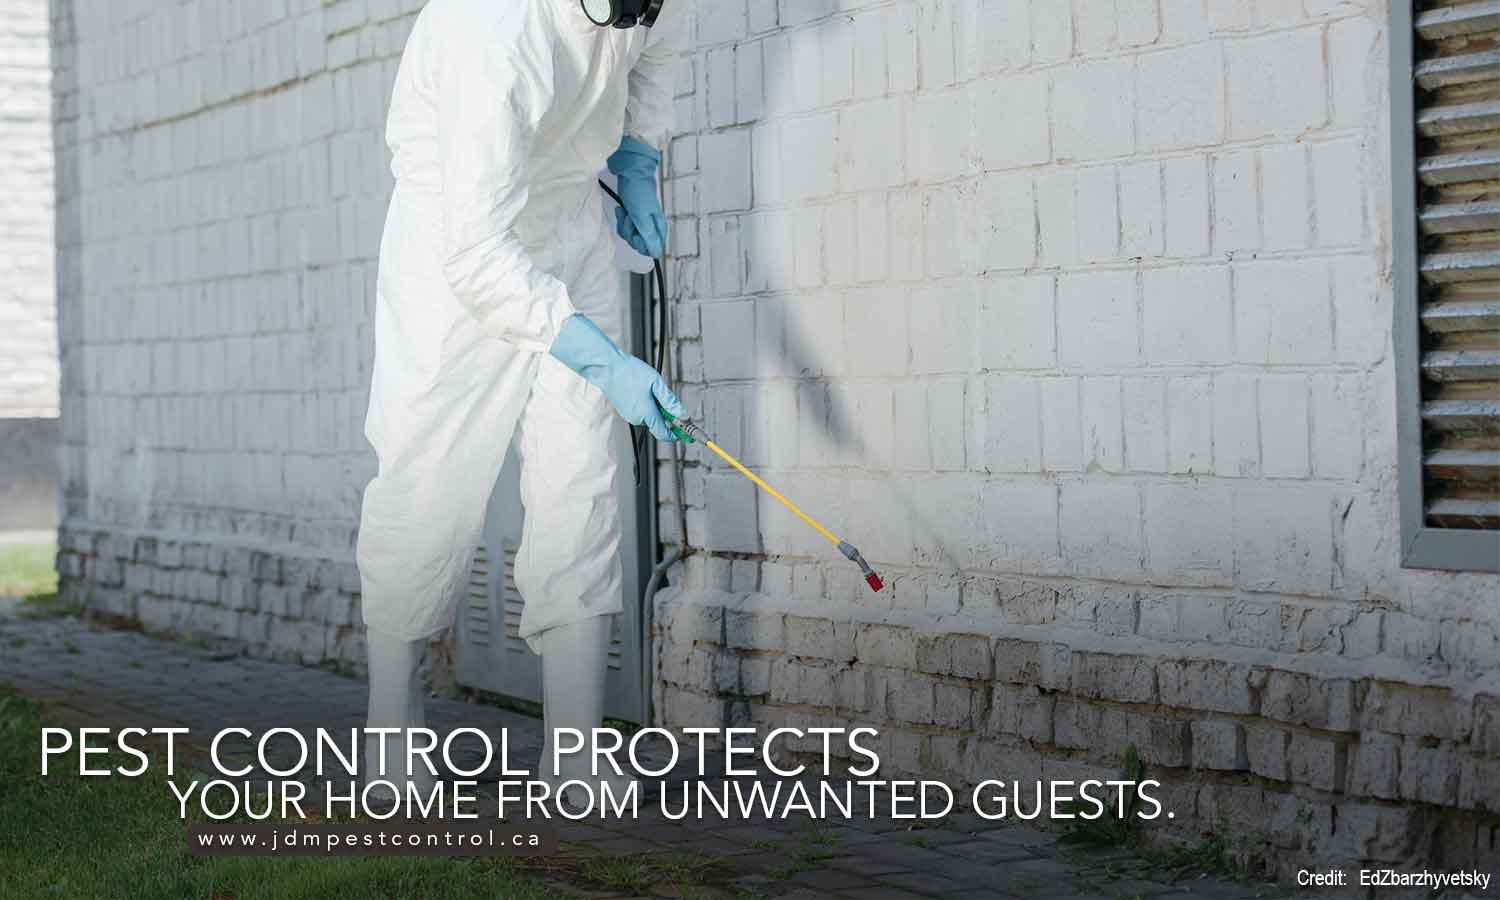 Pest control protects your home from unwanted guests.